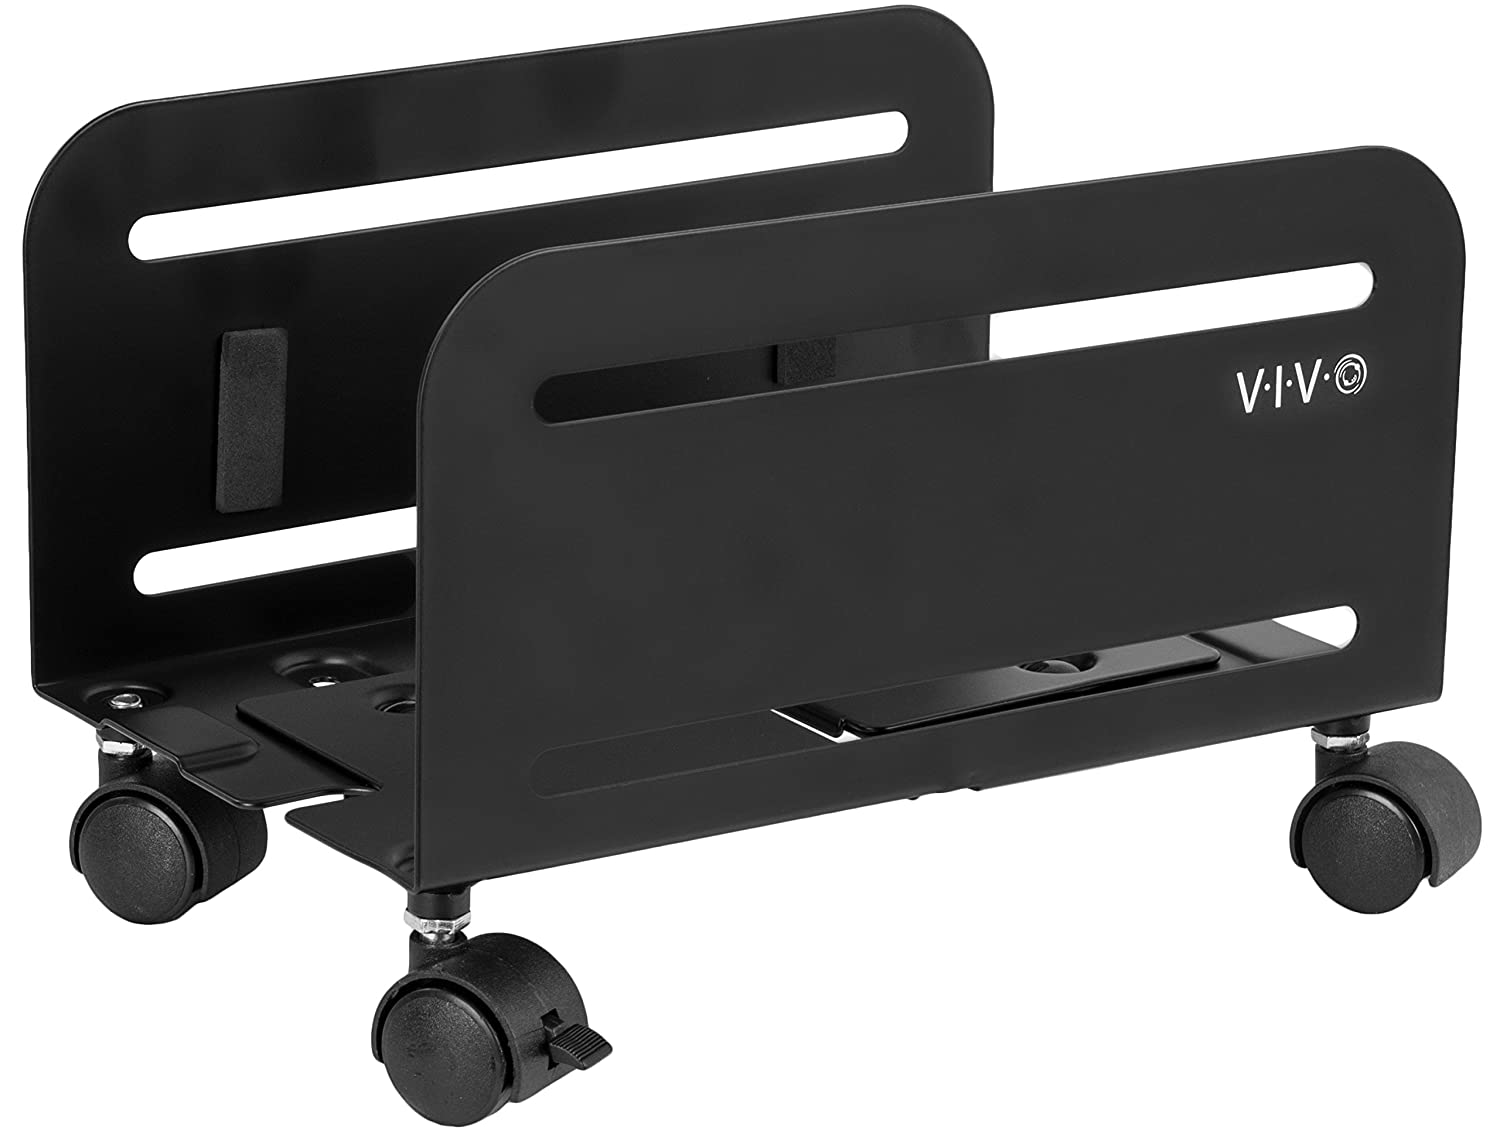 VIVO Black Computer Desktop ATX-Case CPU Steel Rolling Stand Adjustable Mobile Cart Holder Locking Wheels (CART-PC01)